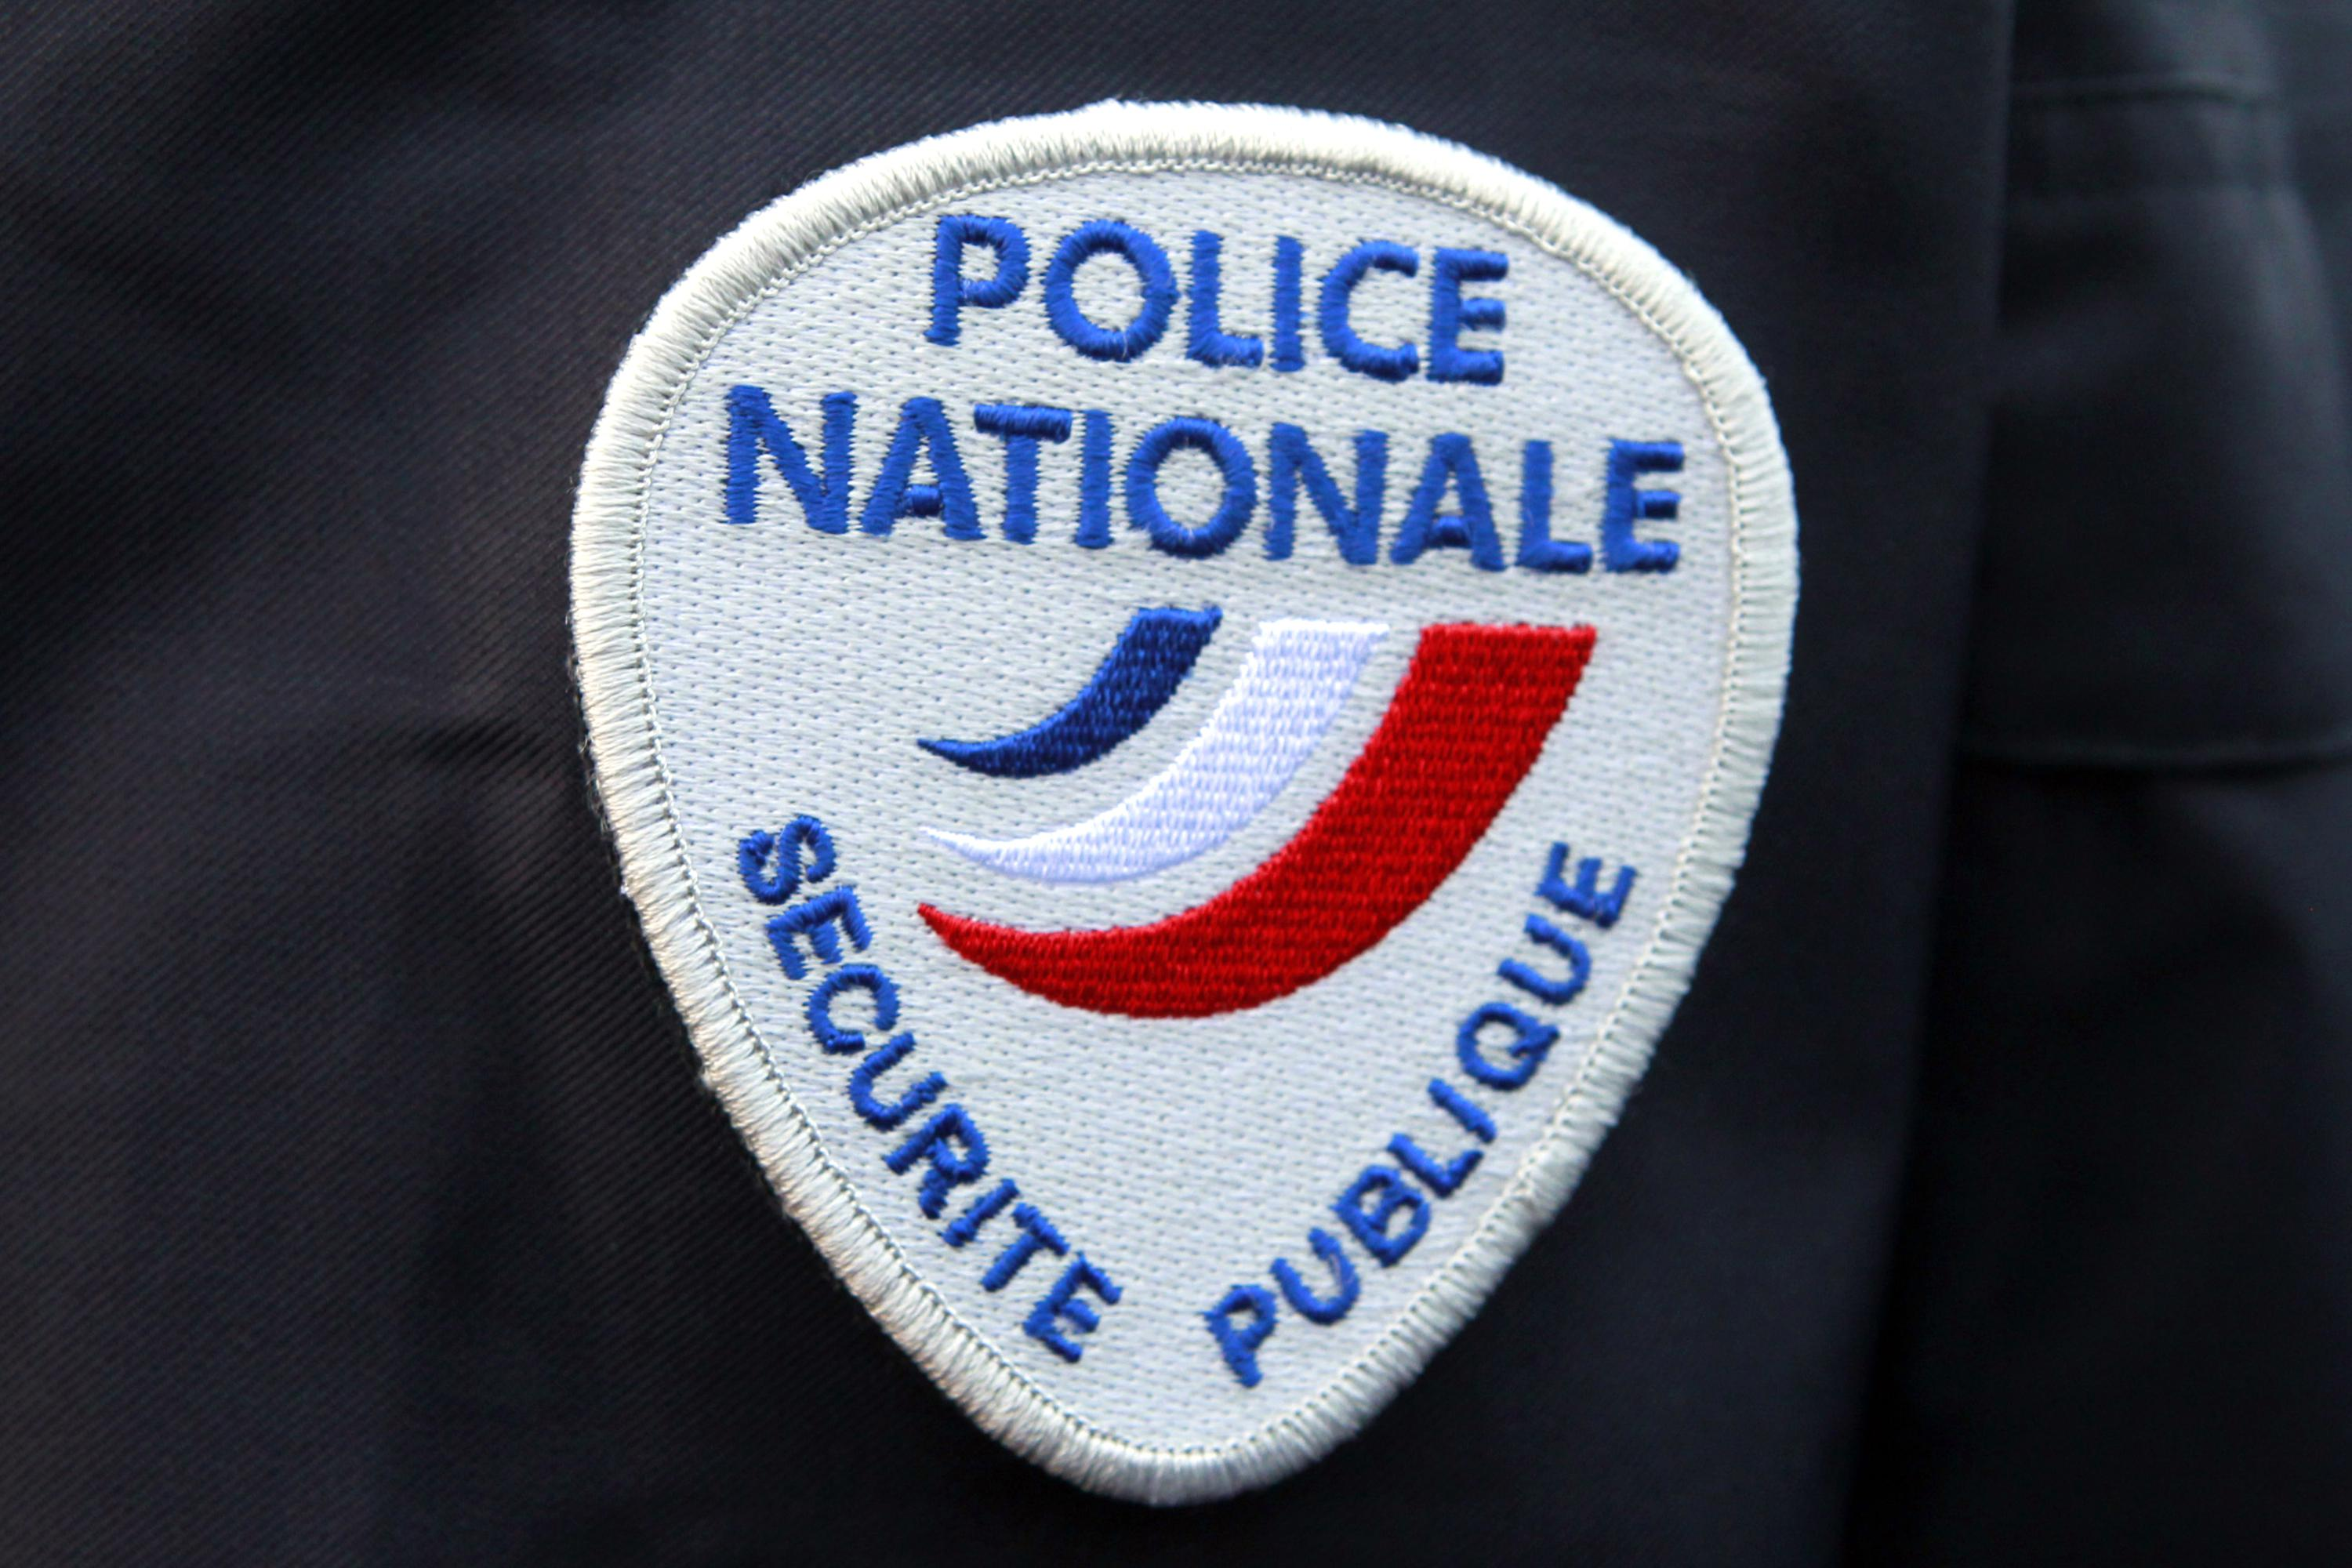 French sexual abuse victims denounce police mistreatment